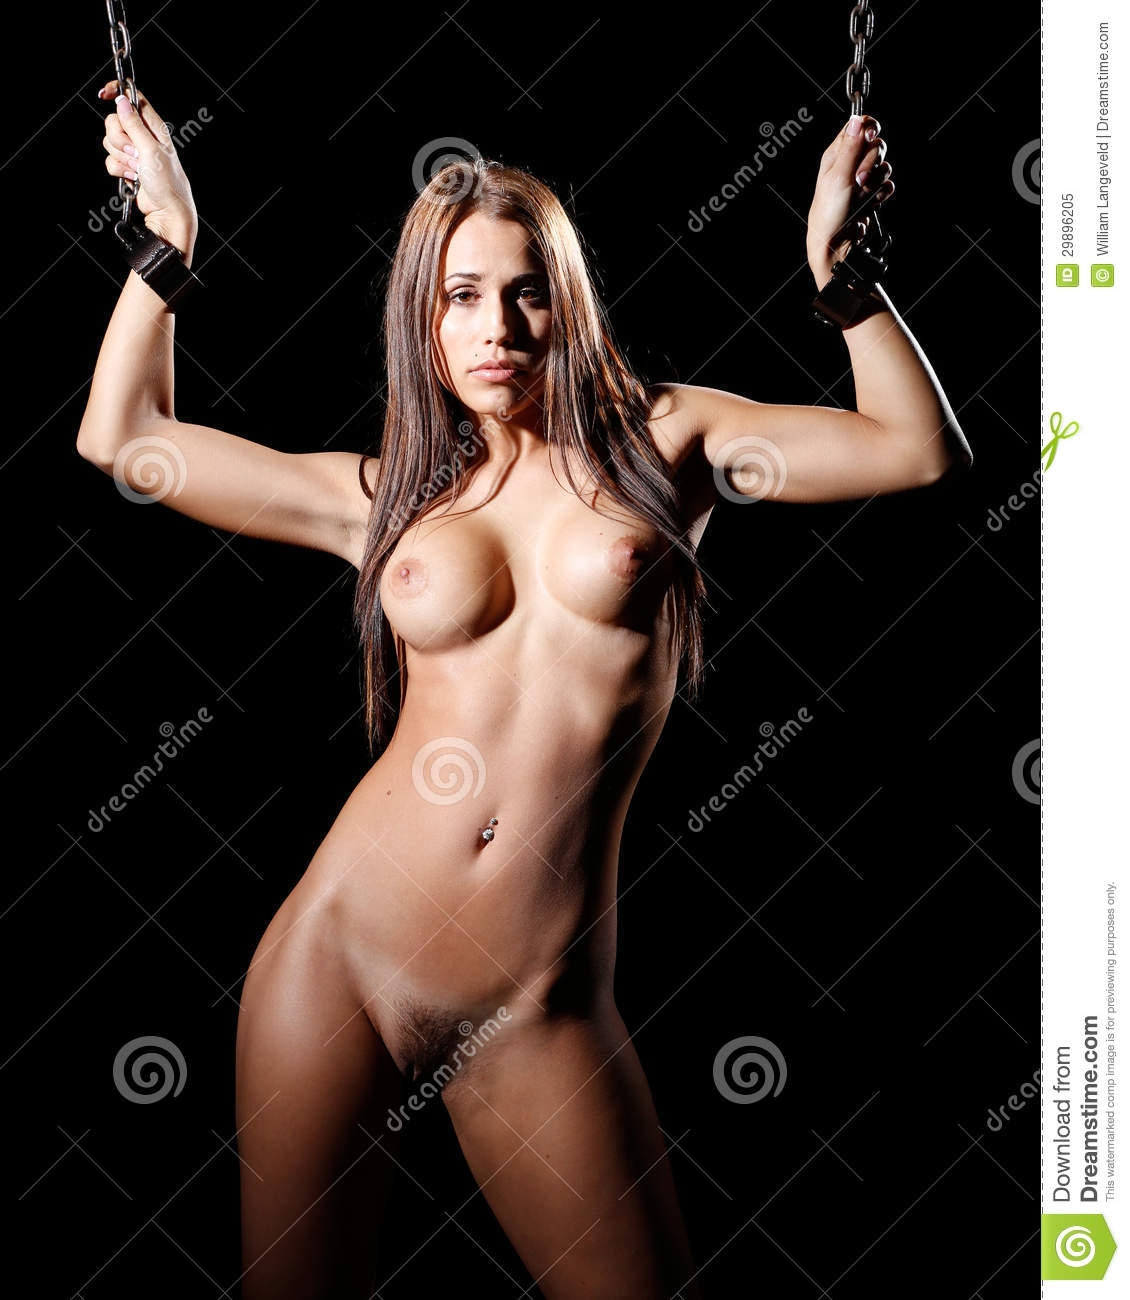 women Beautiful bondage nude